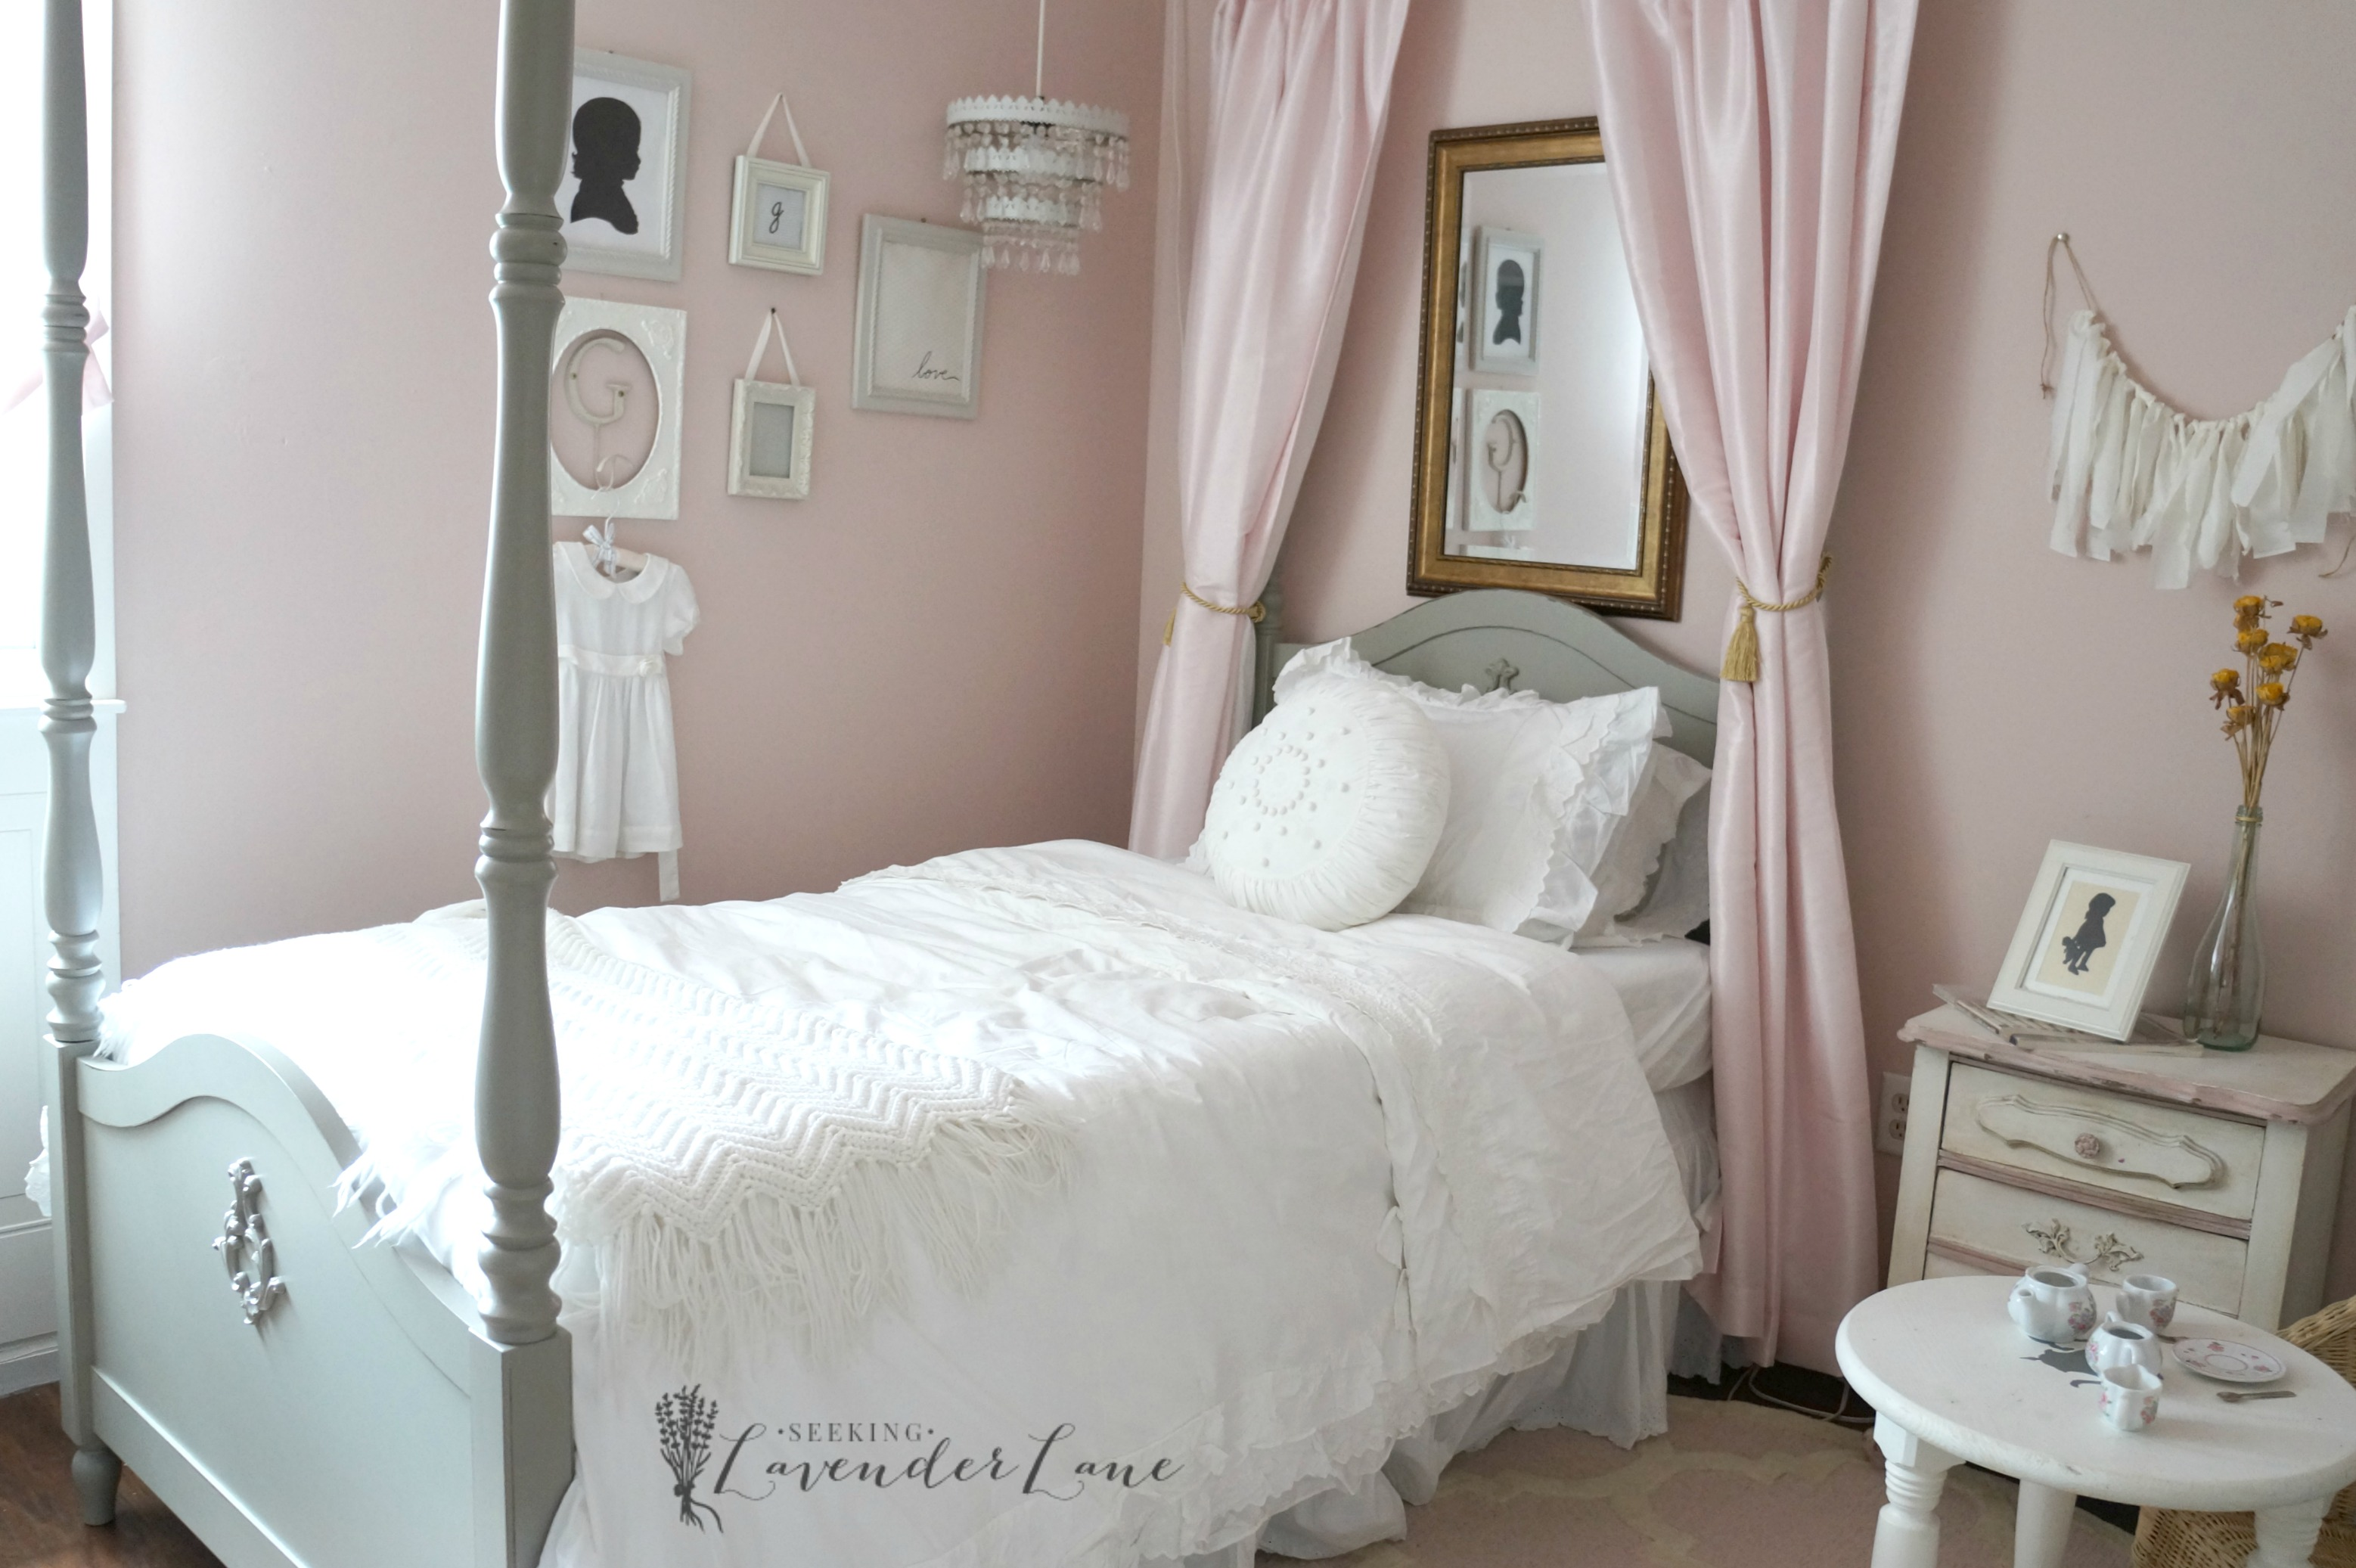 Pink Vintage Girl\'s Bedroom - Seeking Lavendar Lane